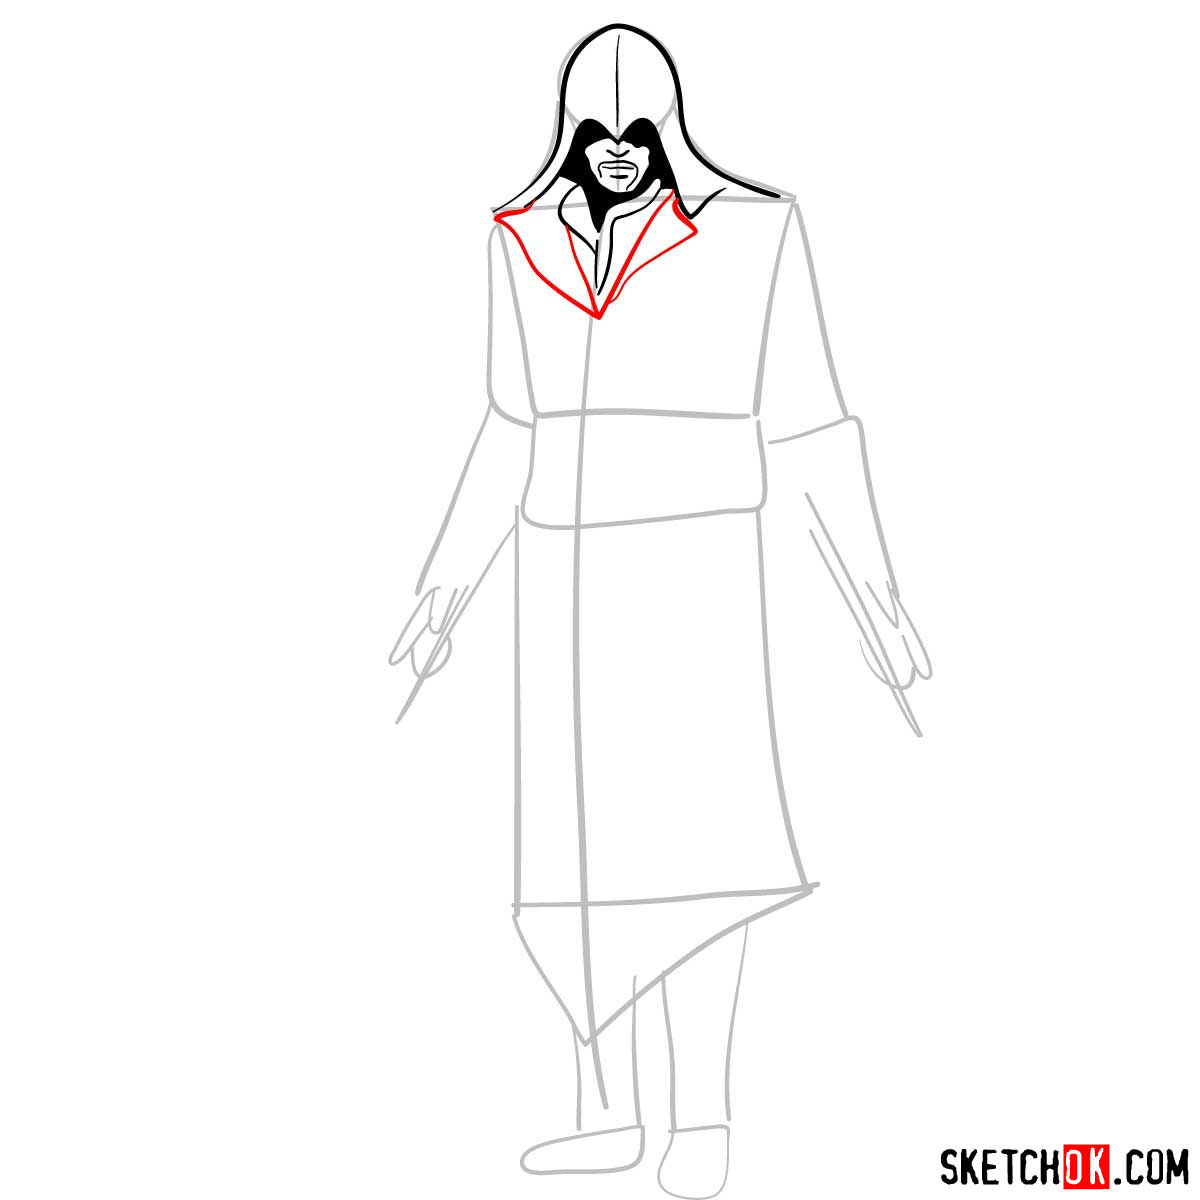 How to draw an Assassin from Assassin's Creed game - step 05